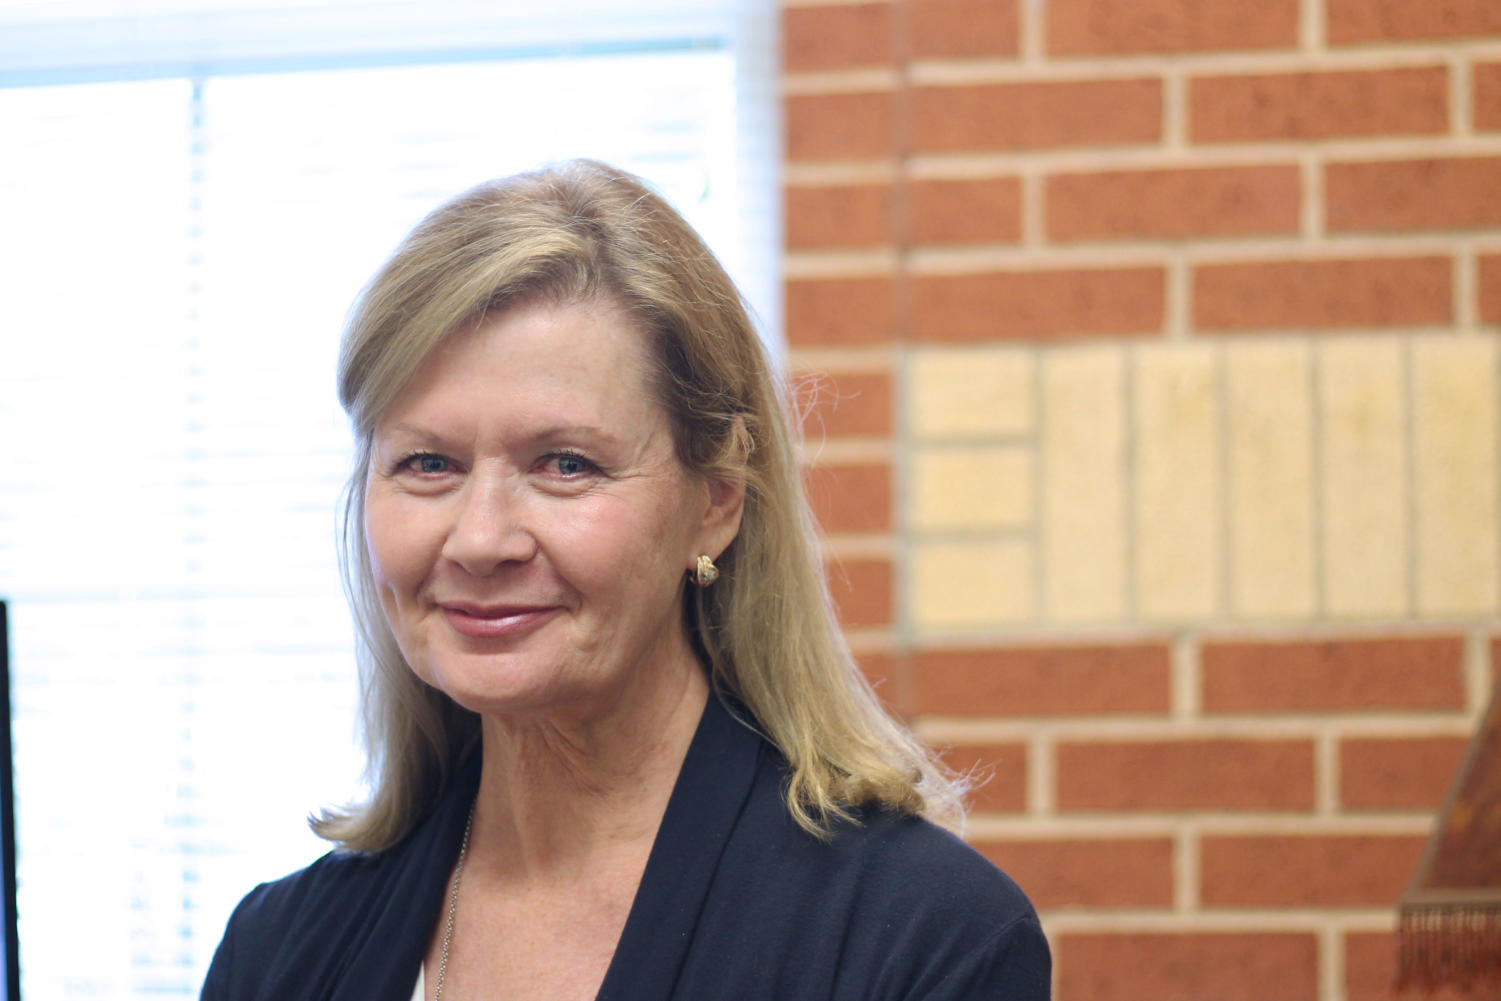 The school hired new attendance officer Debra Hogan for the new school year.